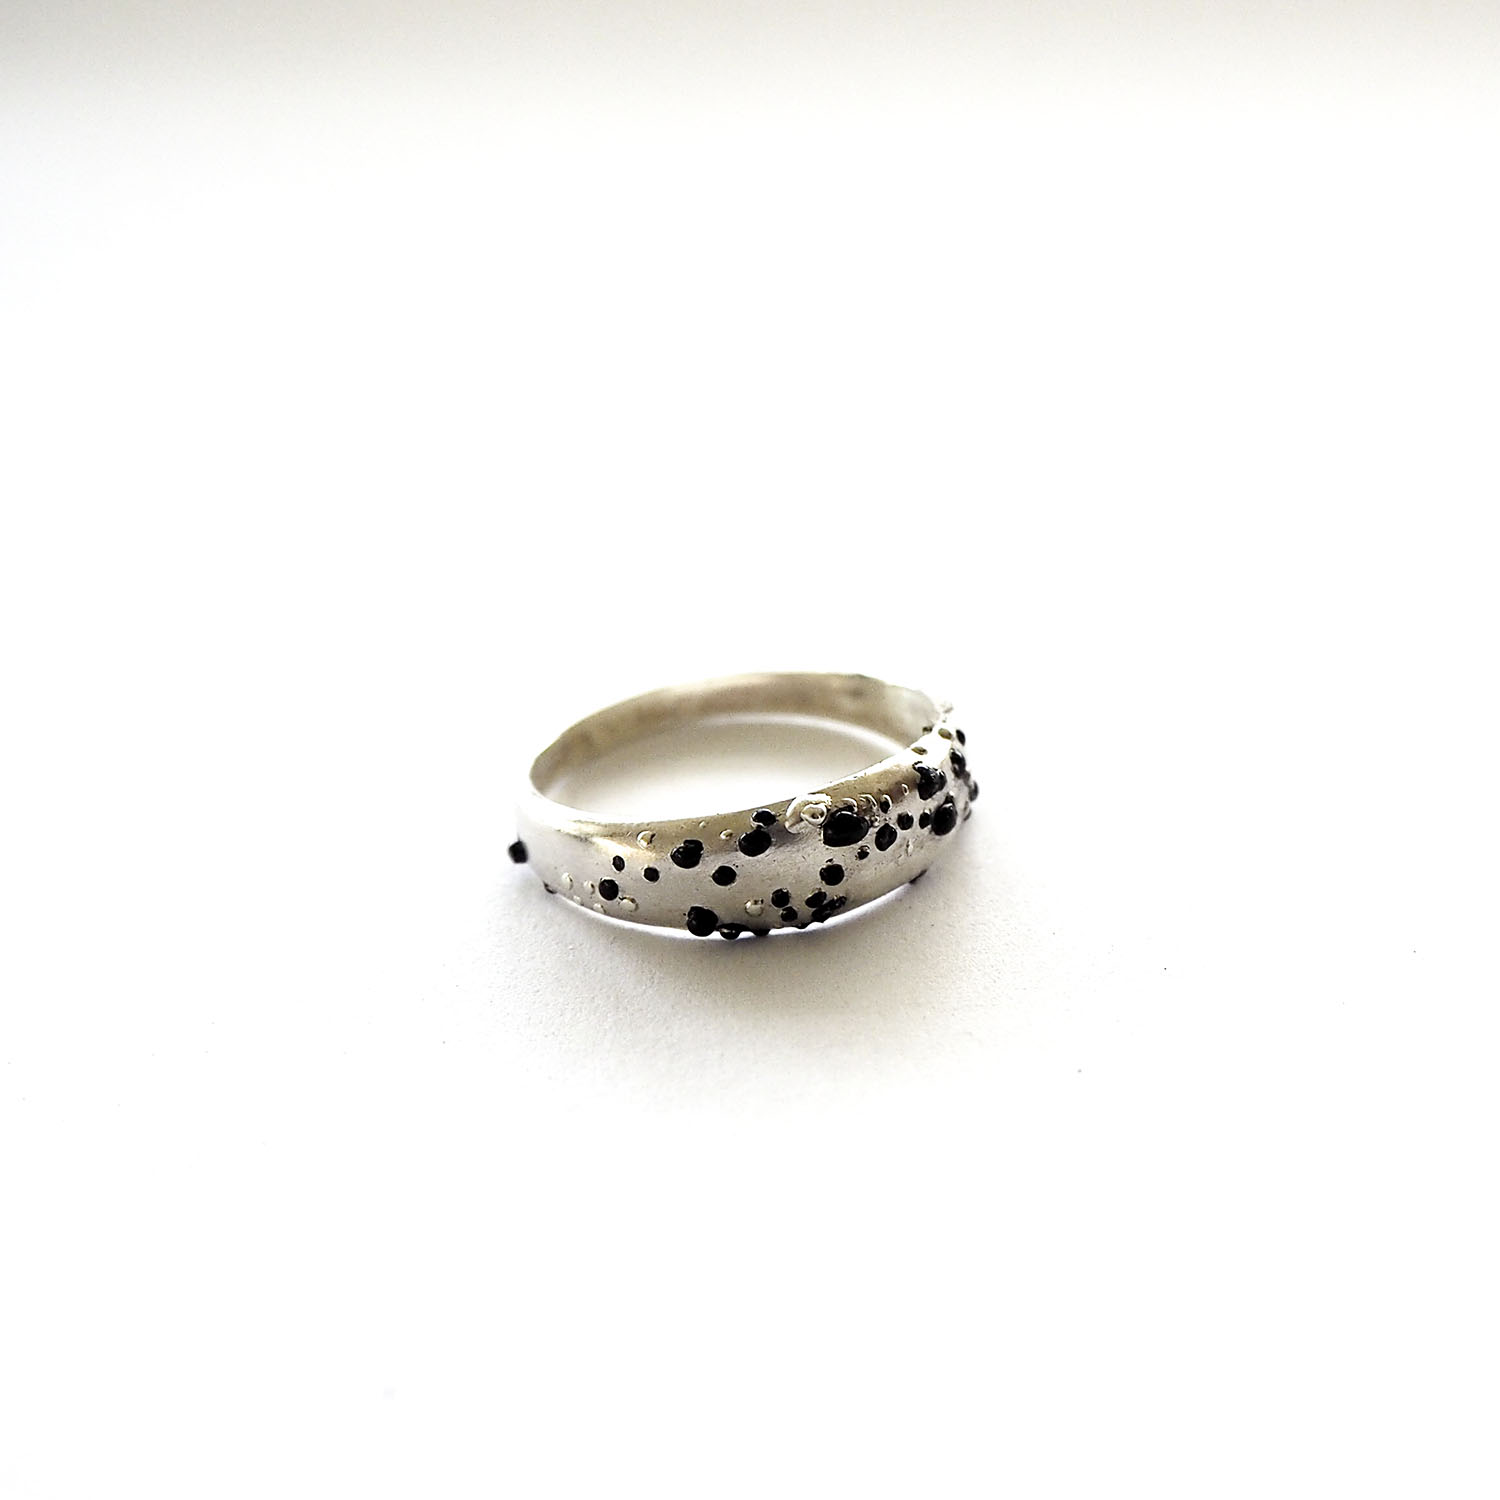 Bauble Ring , 2016, Sterling silver, enamel paint